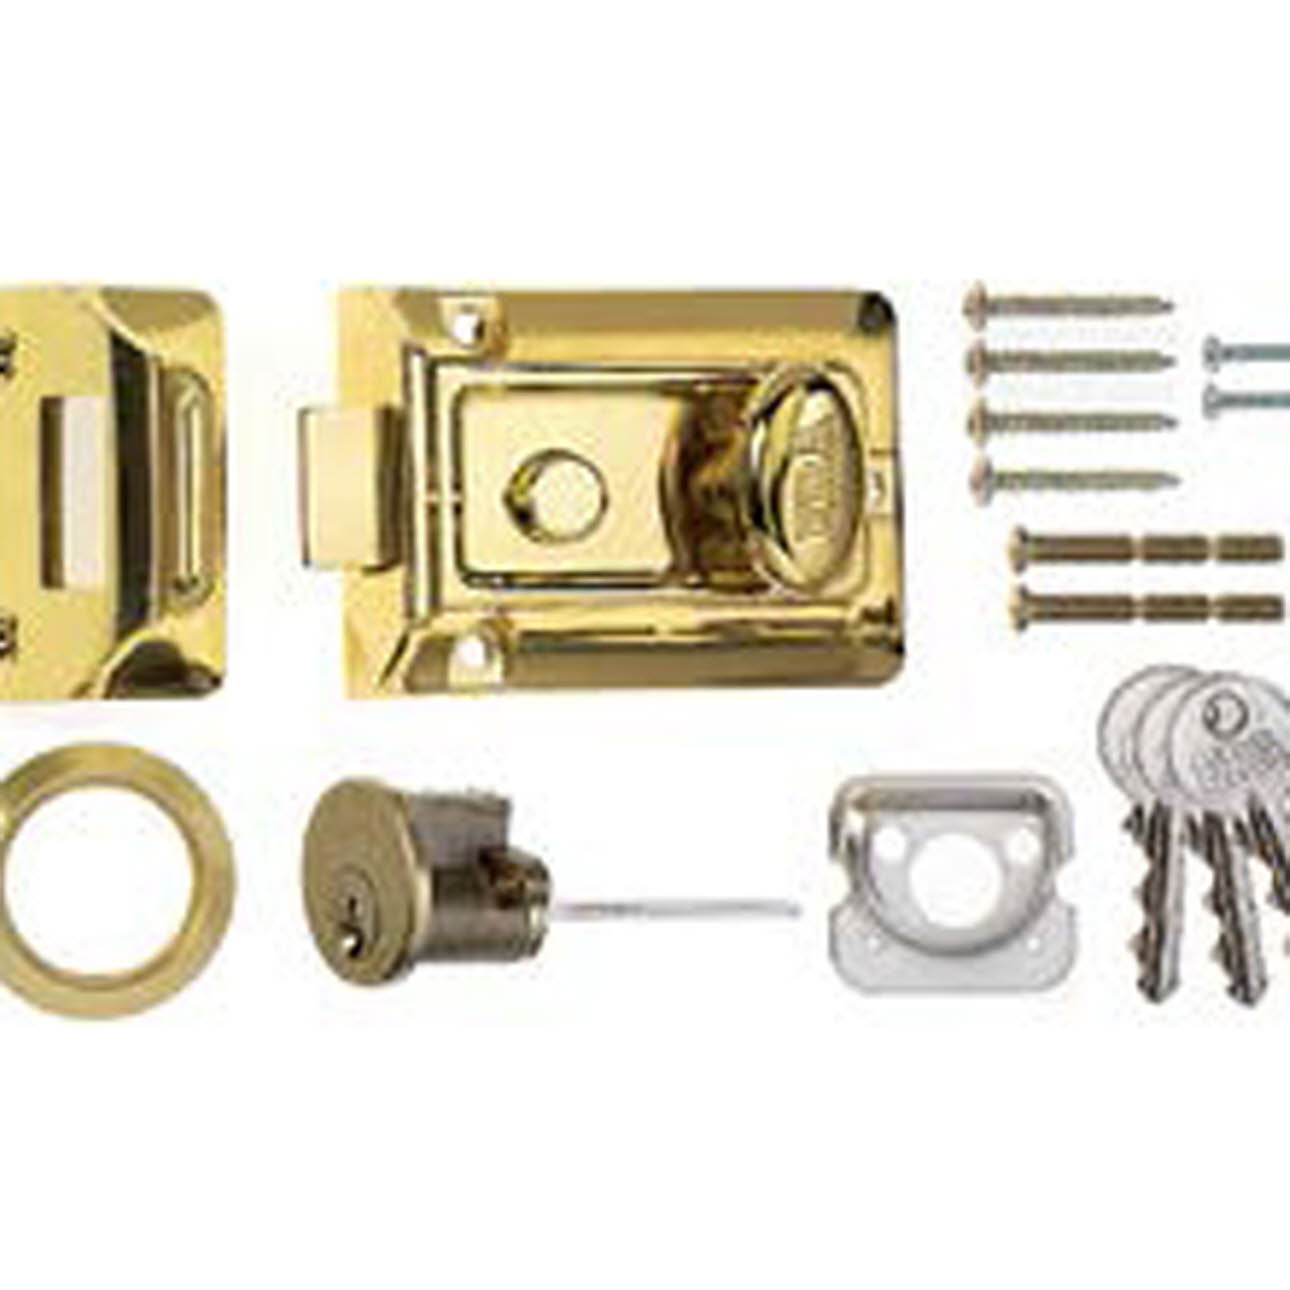 Close up of door latch and components